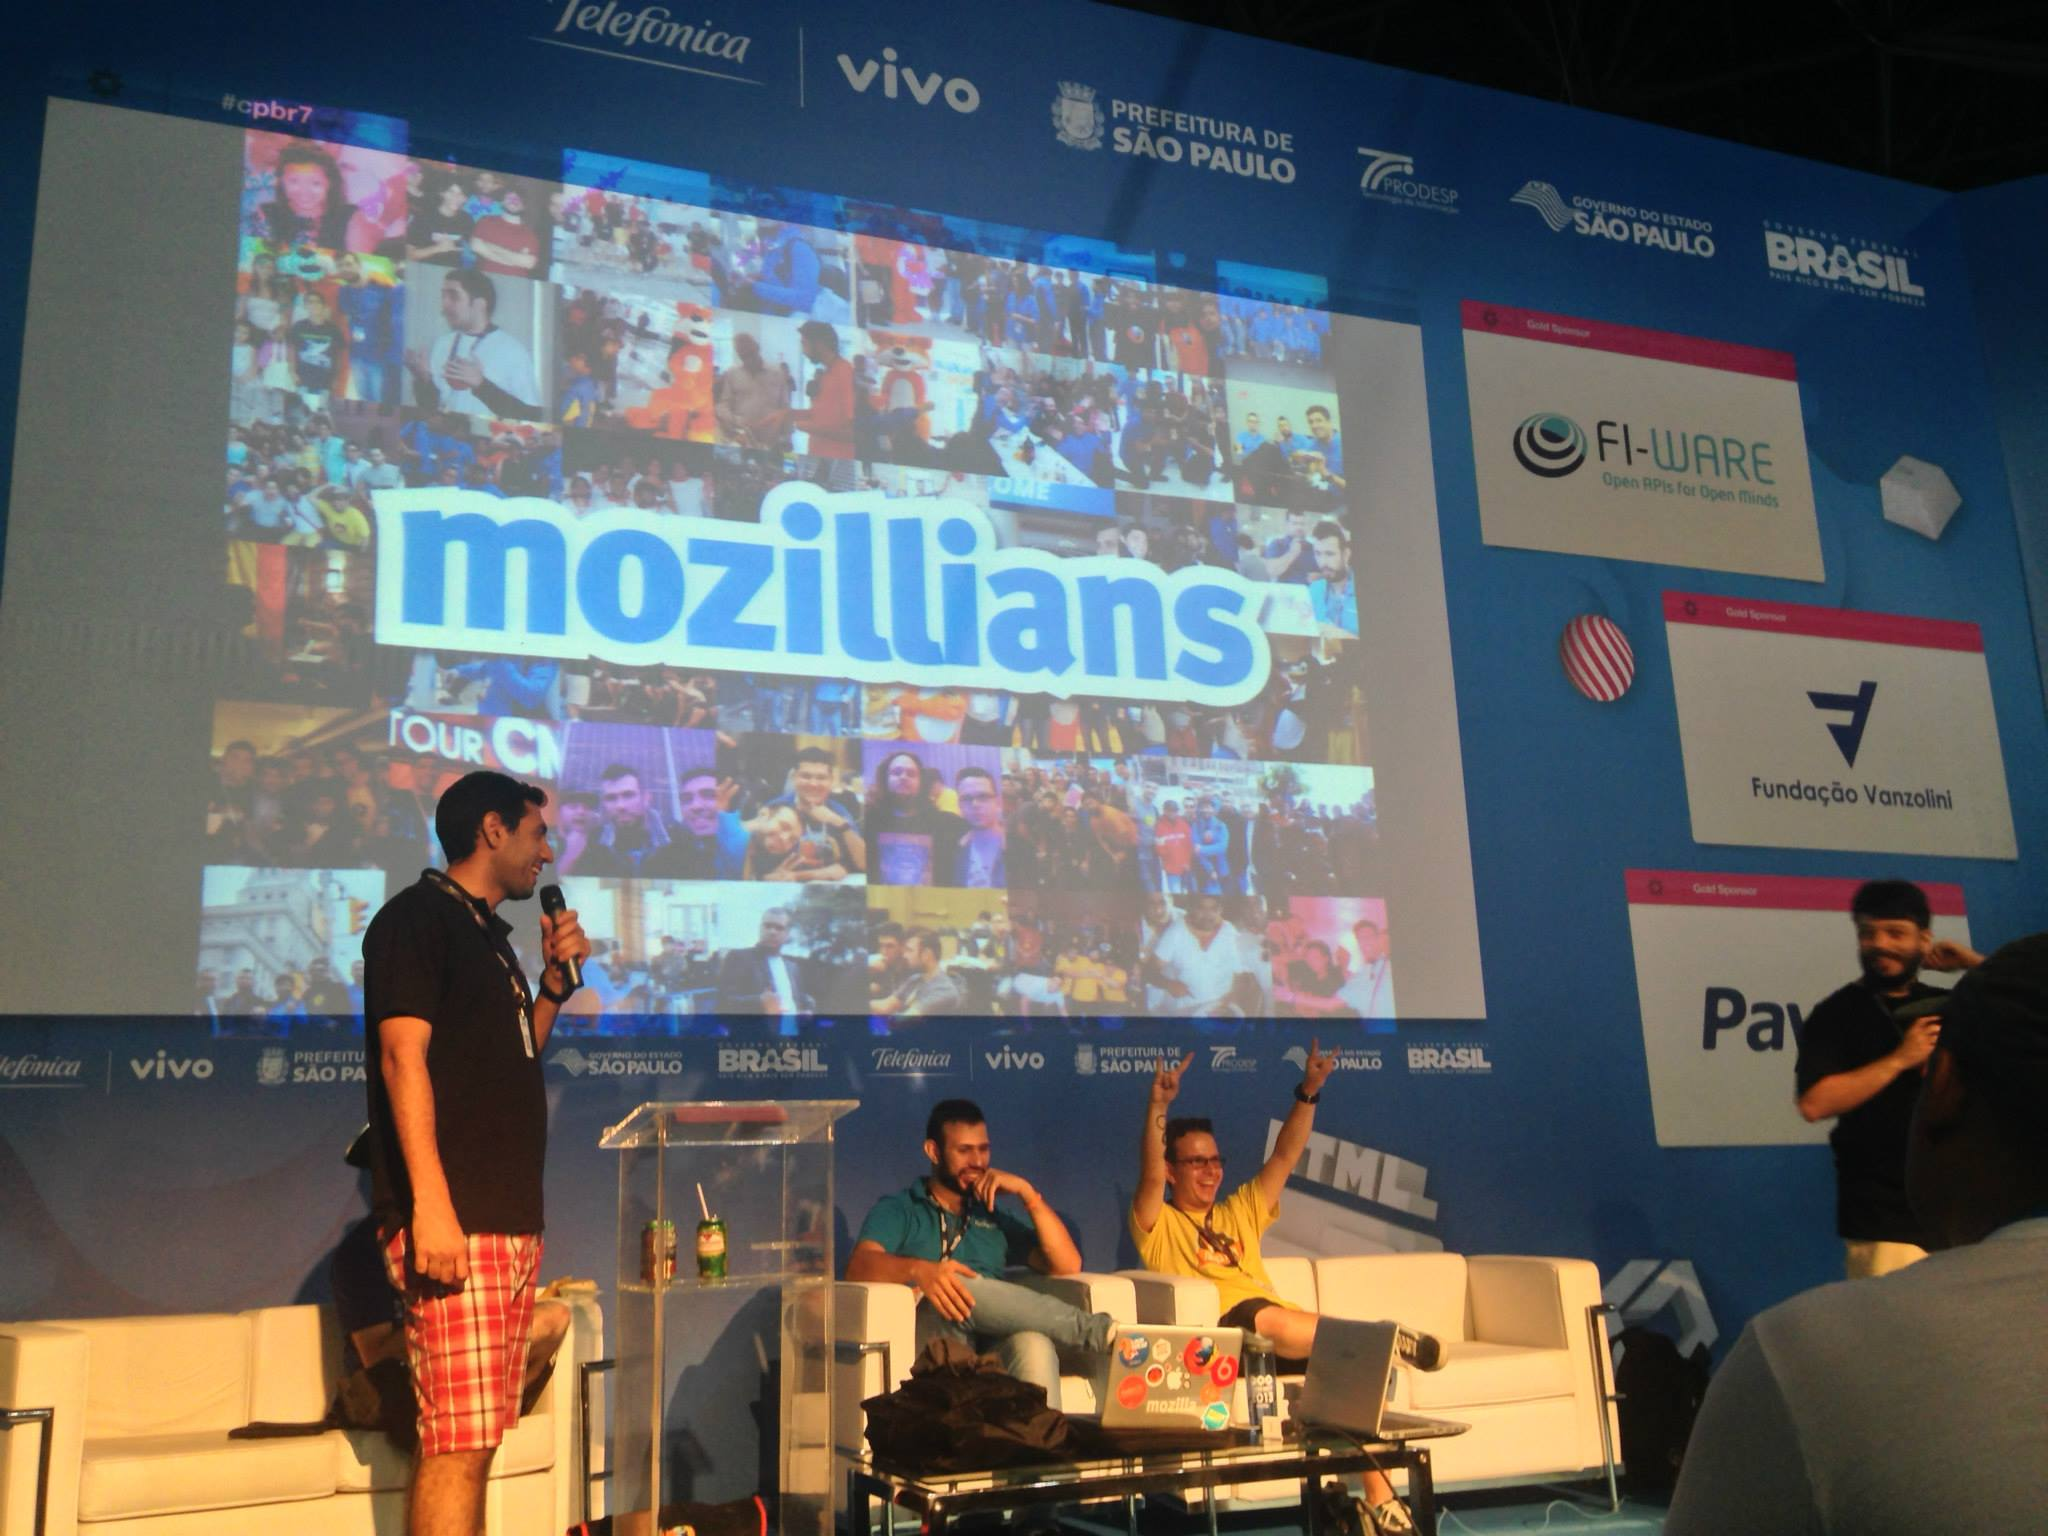 Meet the mozillians